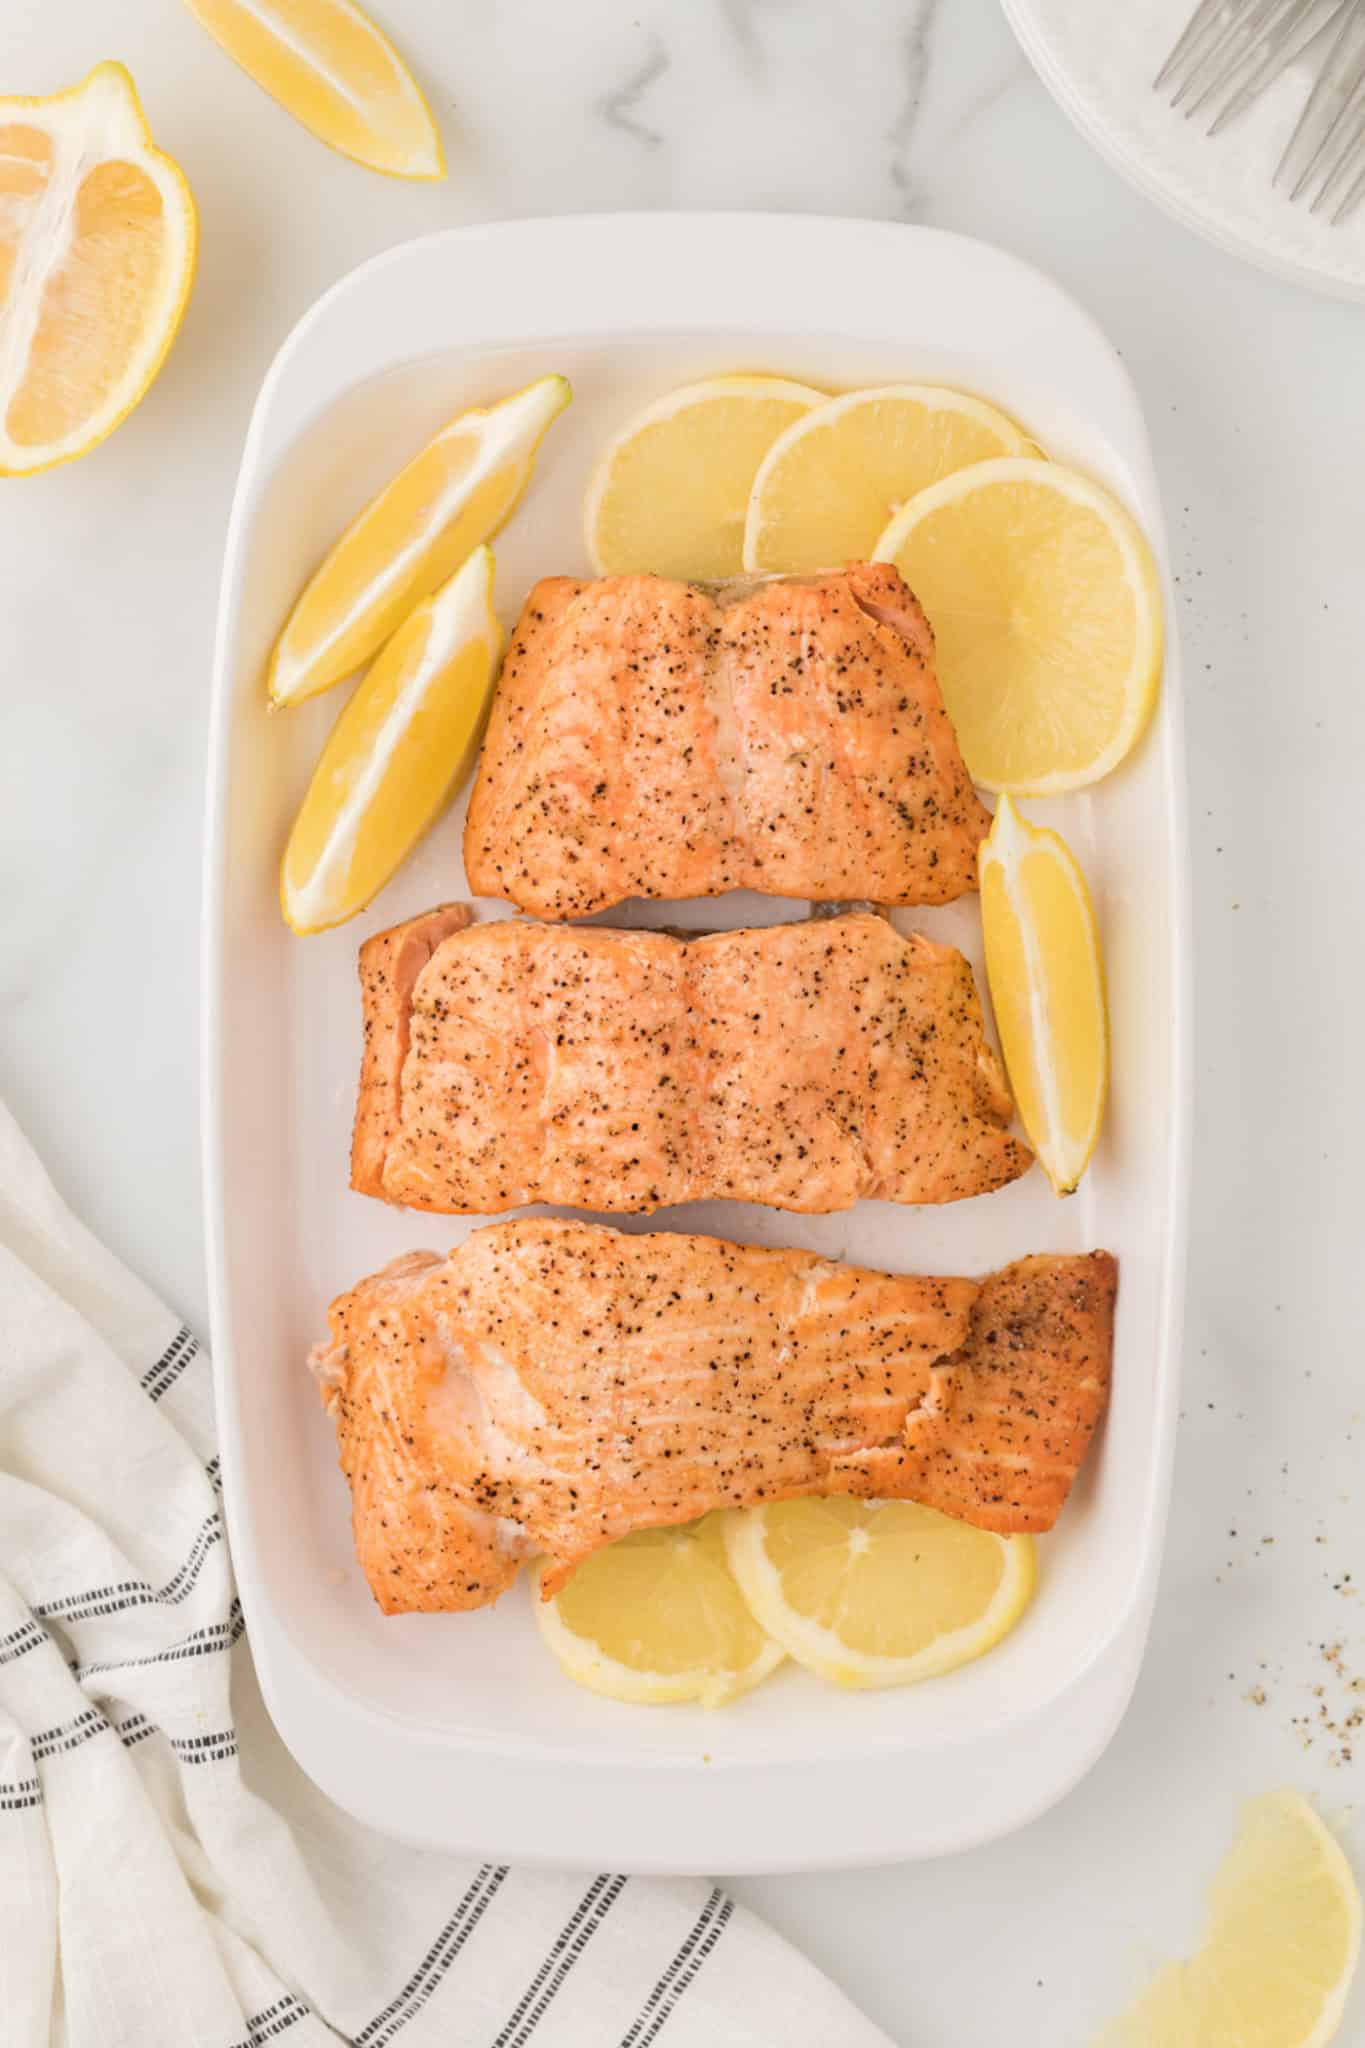 cooked salmon fillets on a serving dish with lemon slices